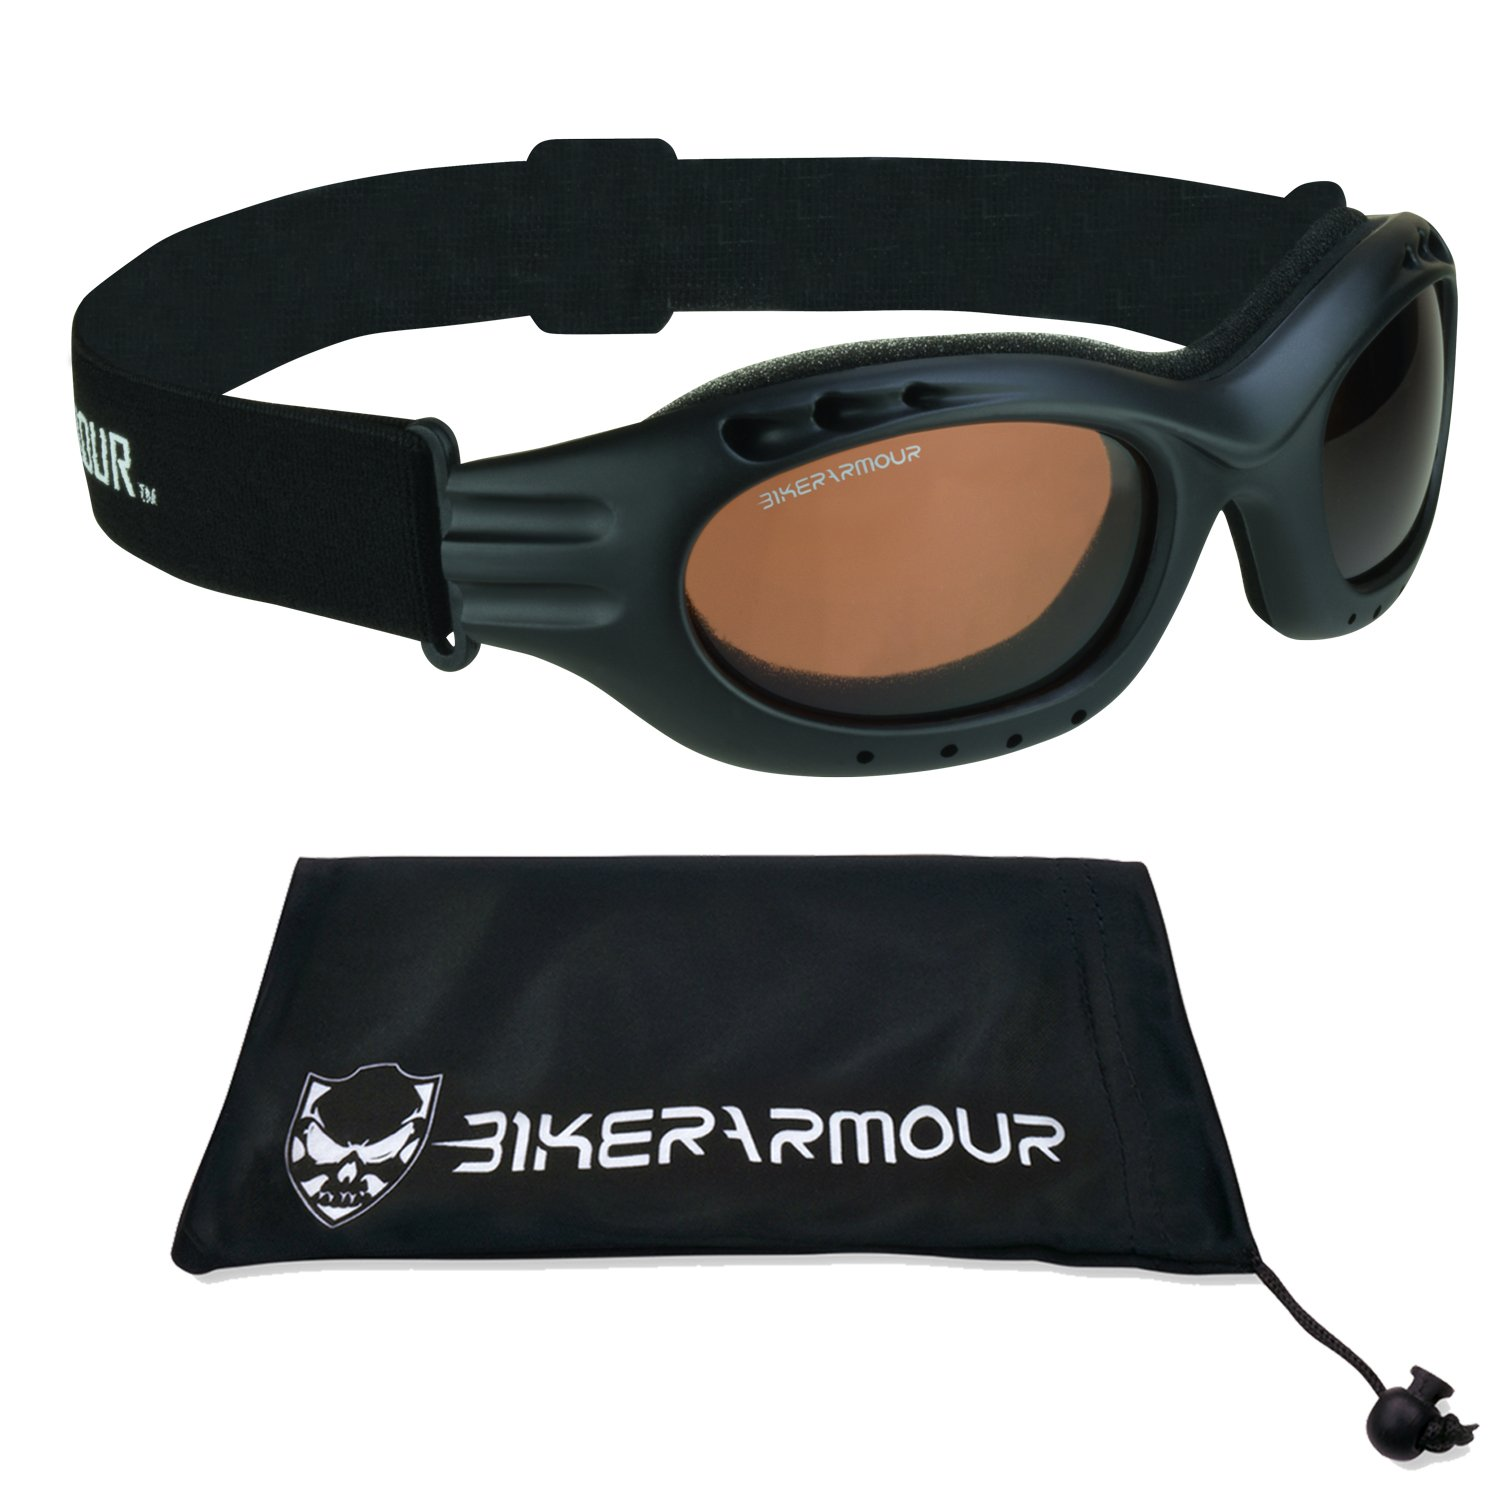 Motorcycle Polarized Goggles High Definition HD Lens for Men and Women.